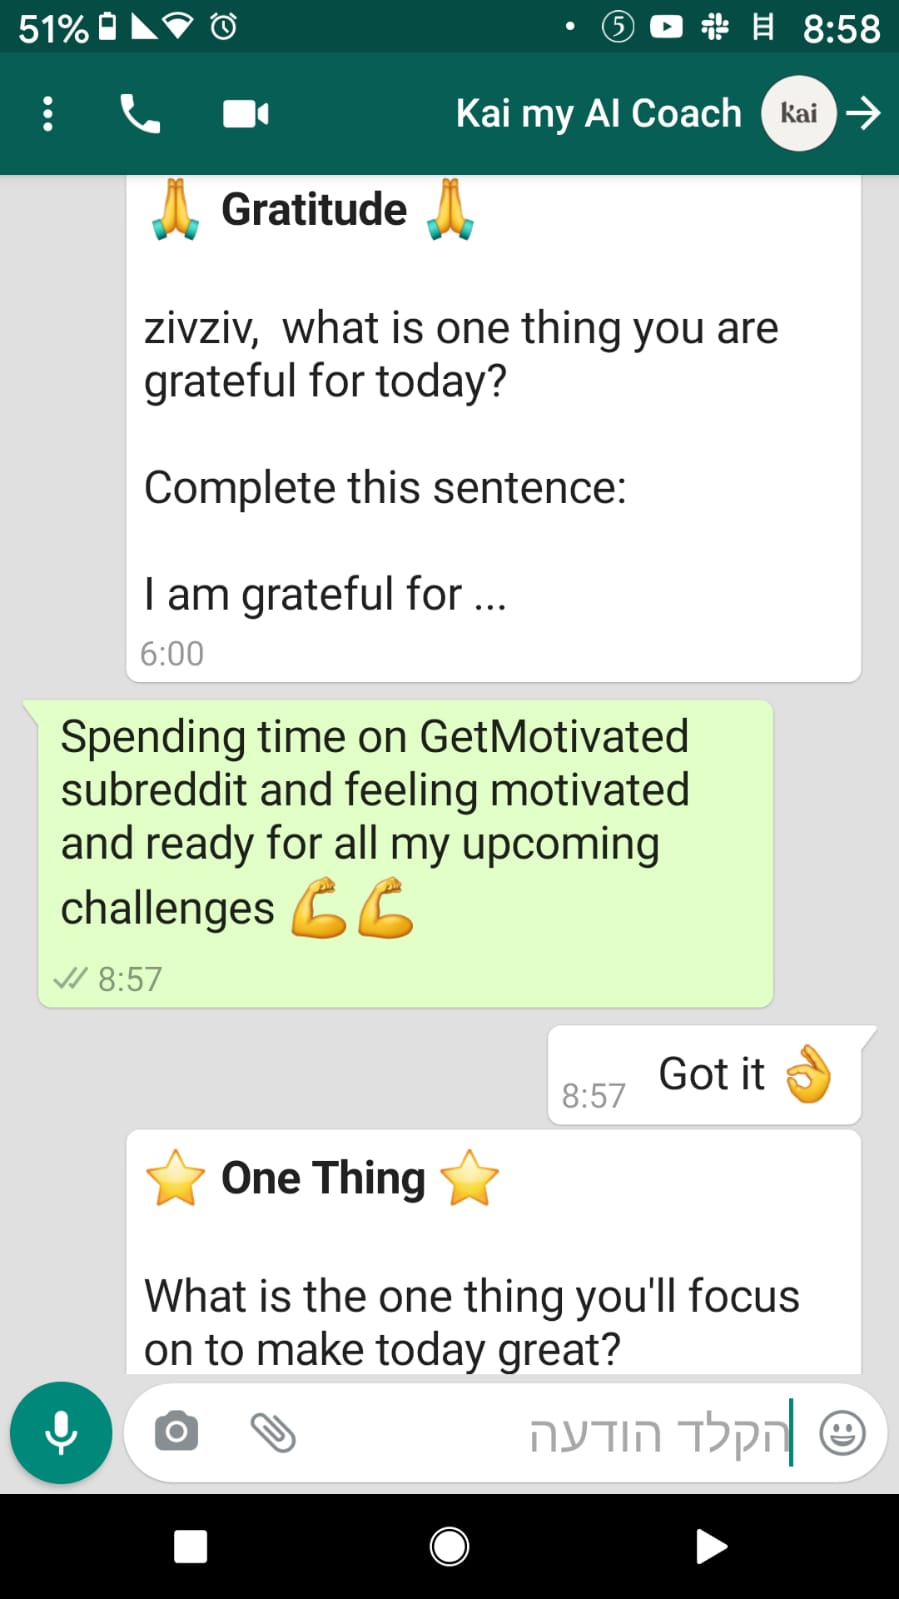 [Image] I Feel Strong And Motivated Thanks To You, The Amazing People Of GetMotivated!!